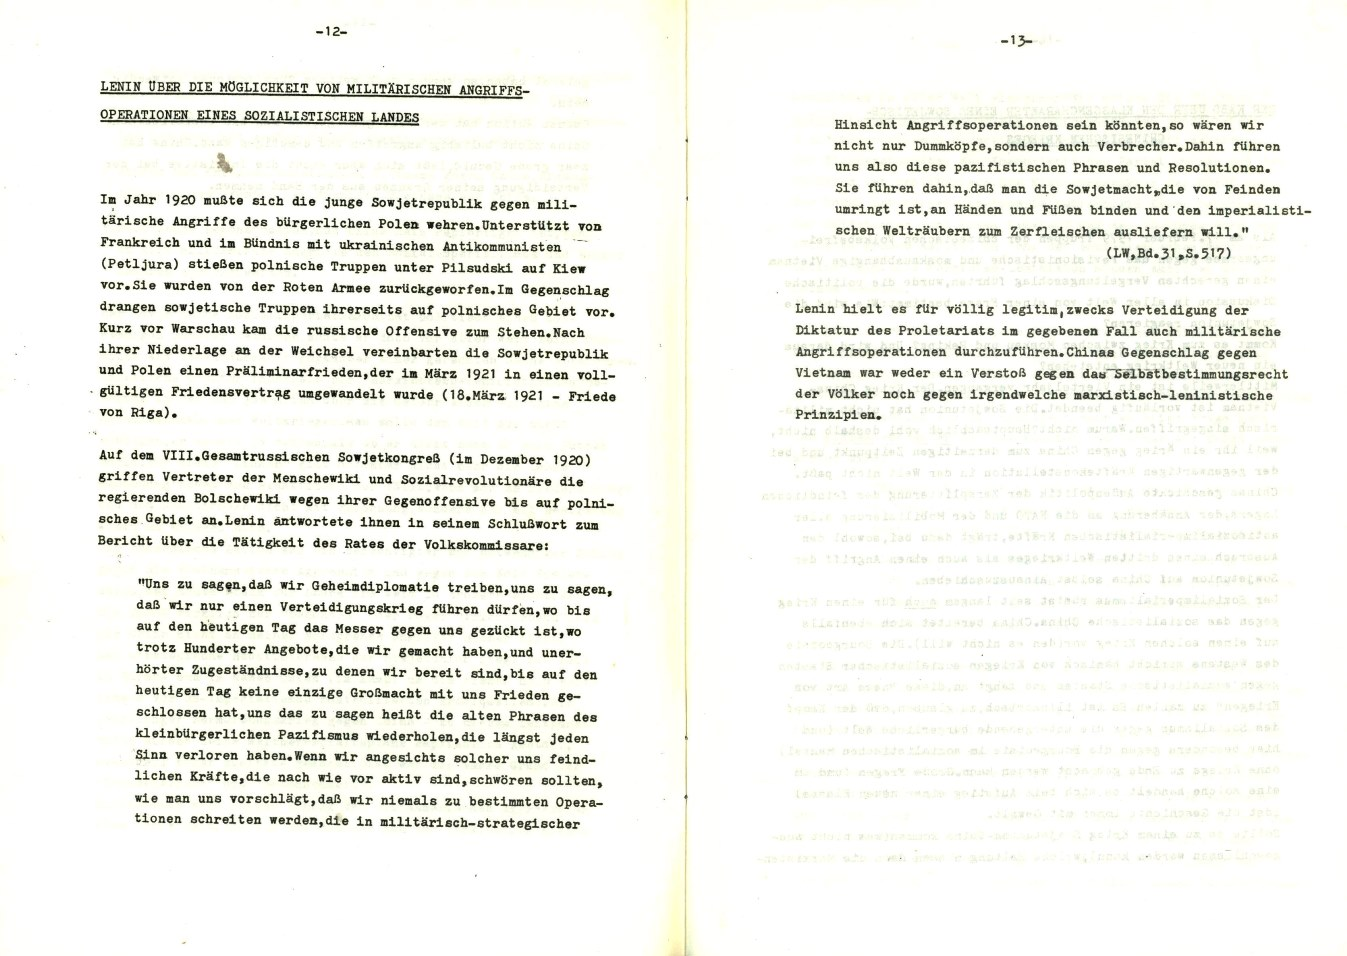 Muenchen_Kampf_dem_Revisionismus_1979_10_07